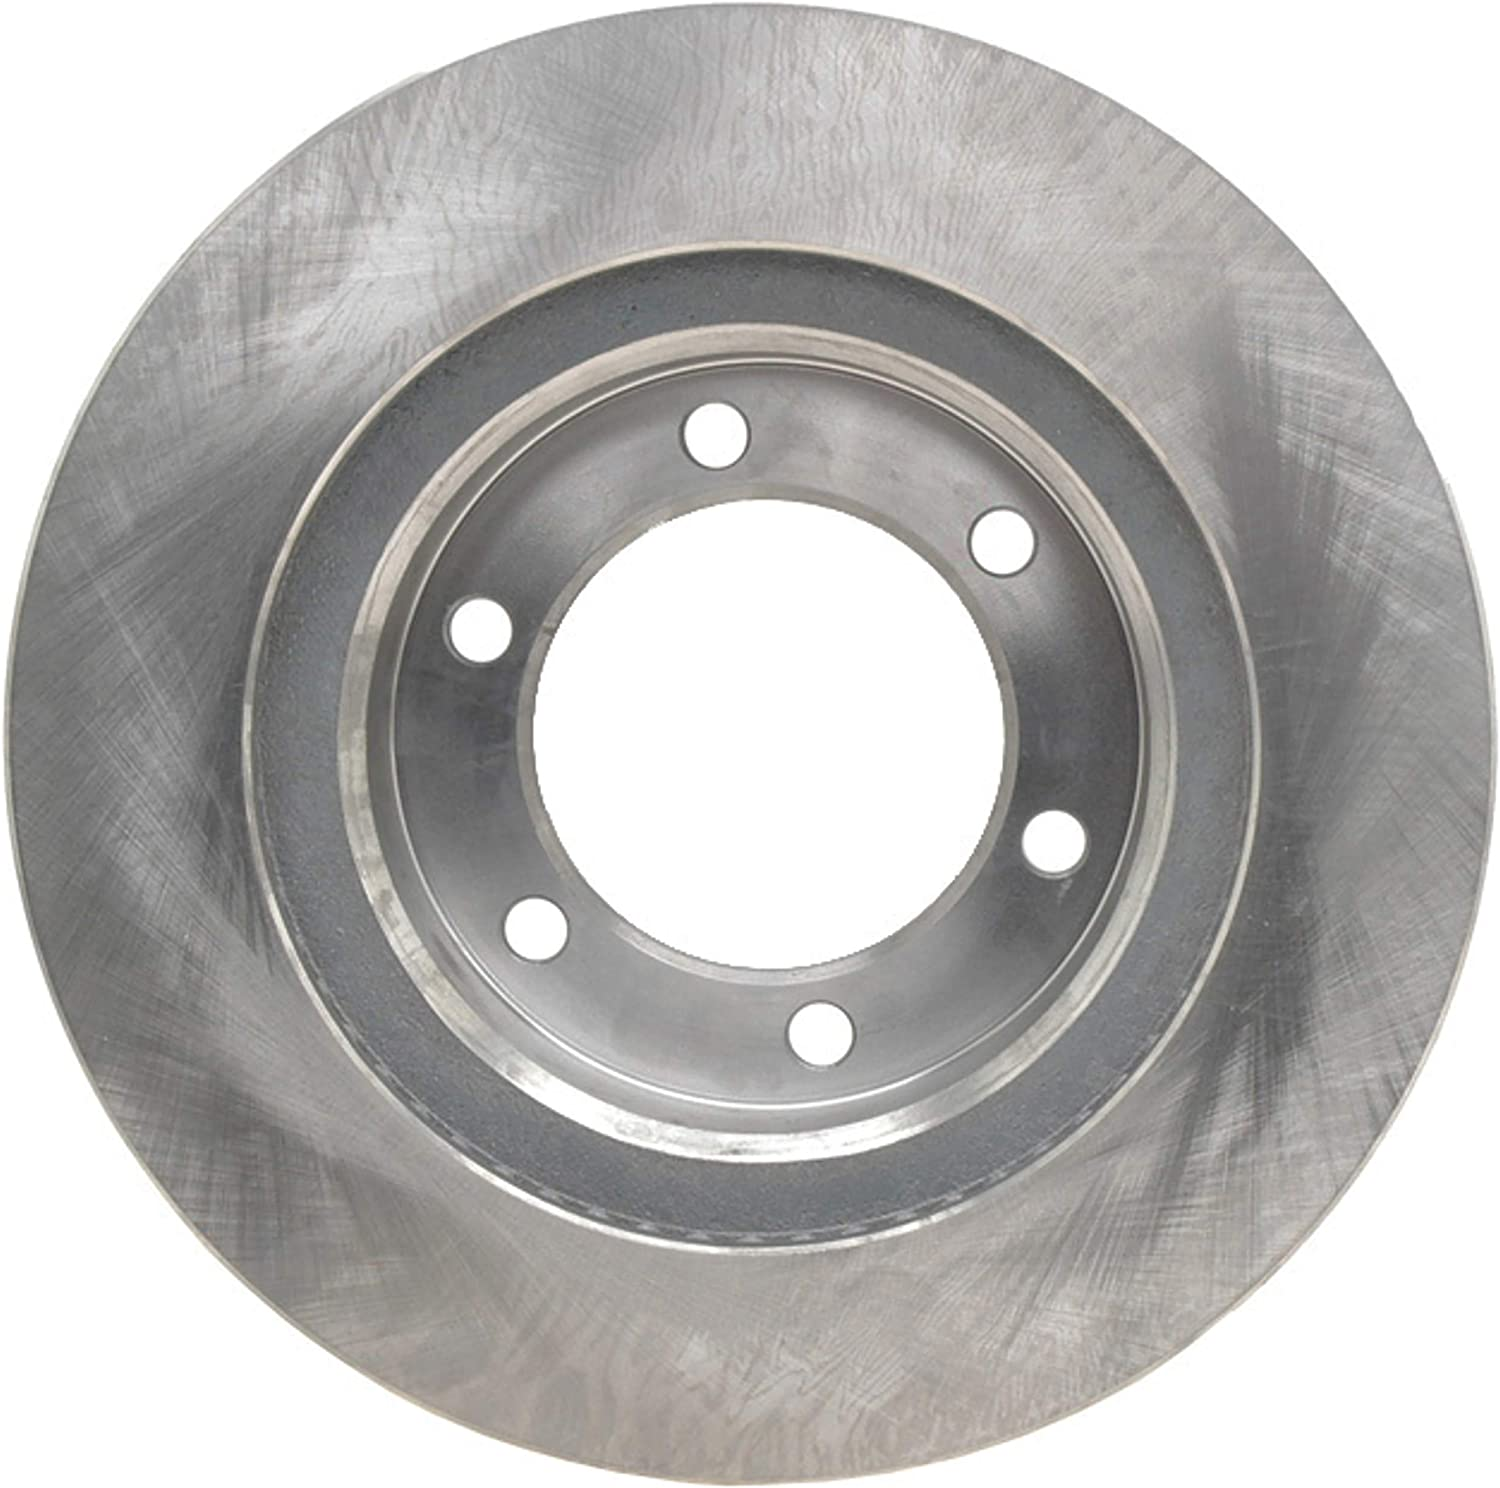 Disc Brake Rotor-Specialty Street Performance Front Raybestos 980646